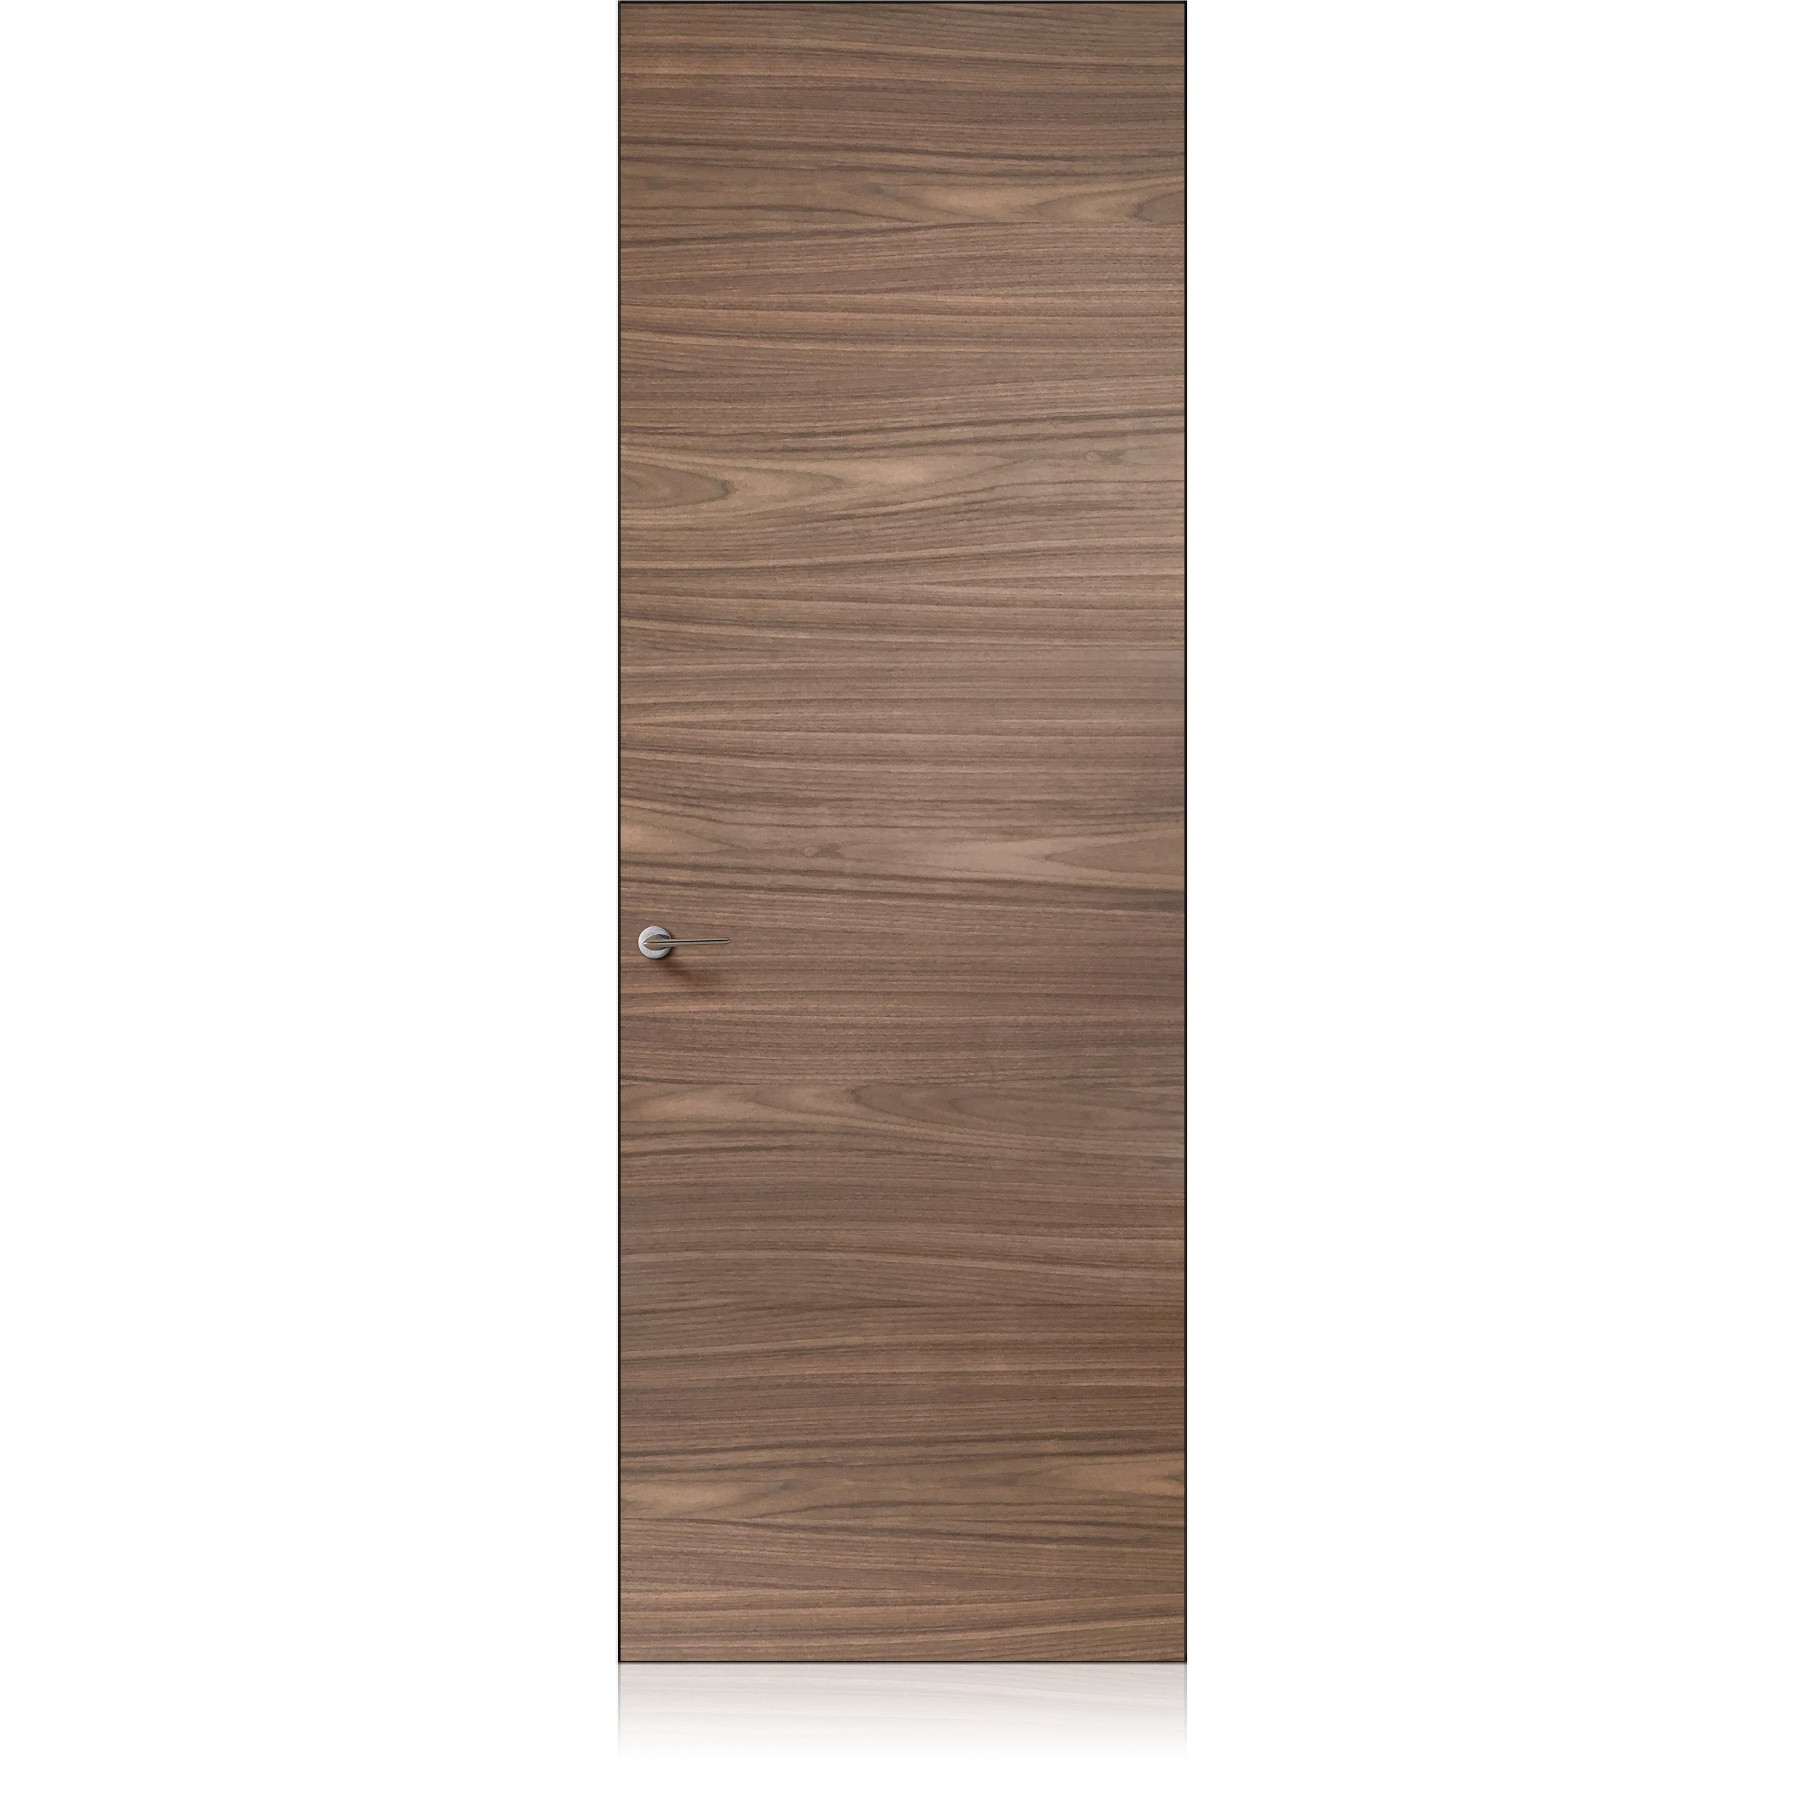 Exit Zero noce canaletto natural touch door